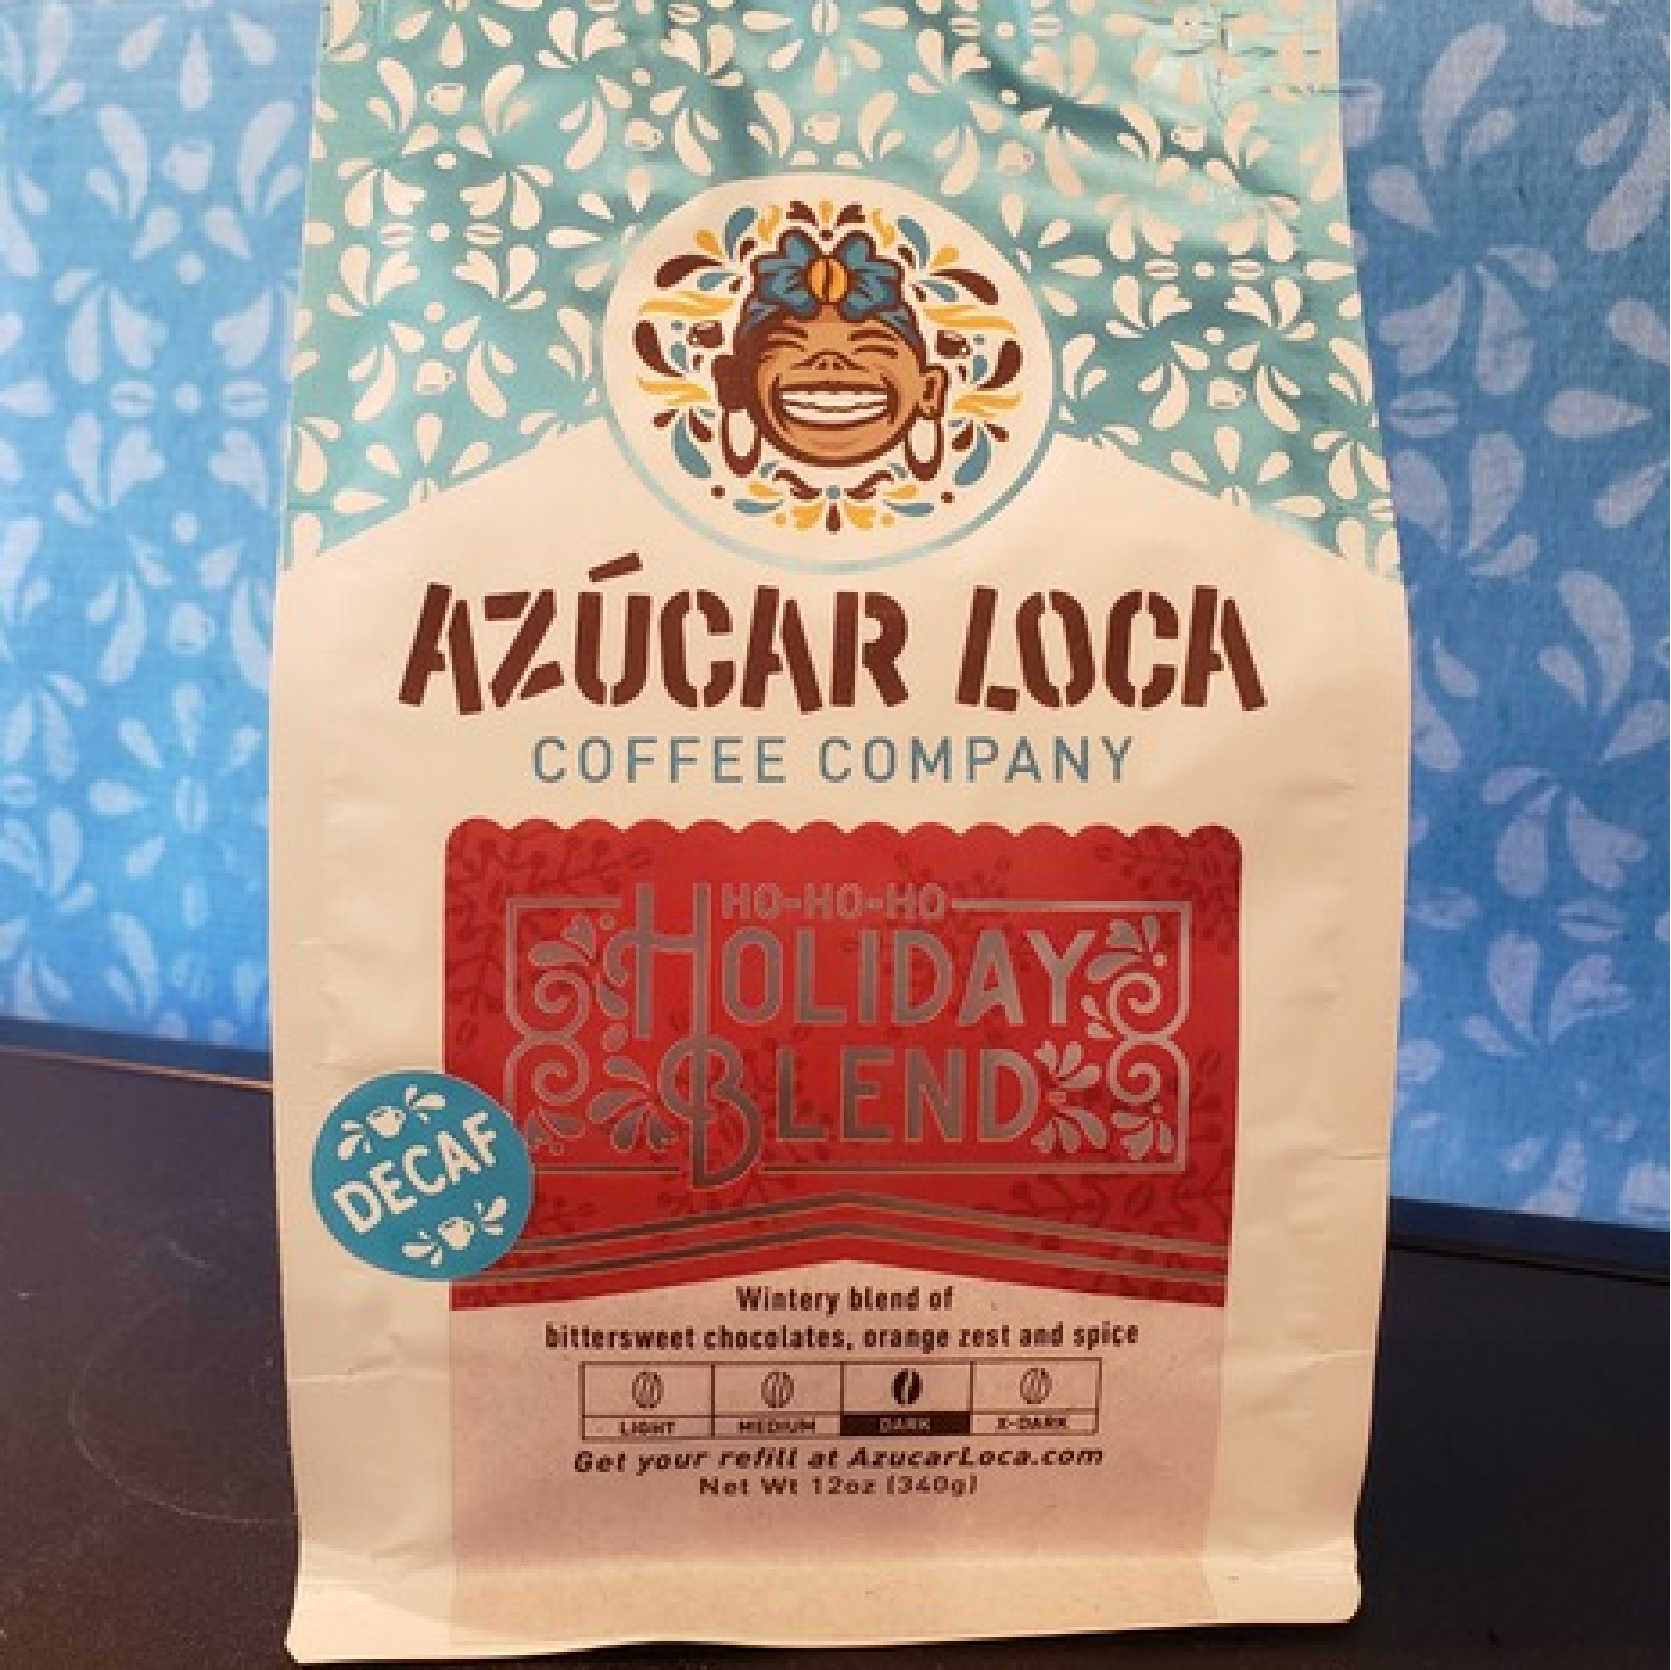 Holiday Blend - Decaf from Azucar Loca Coffee Company